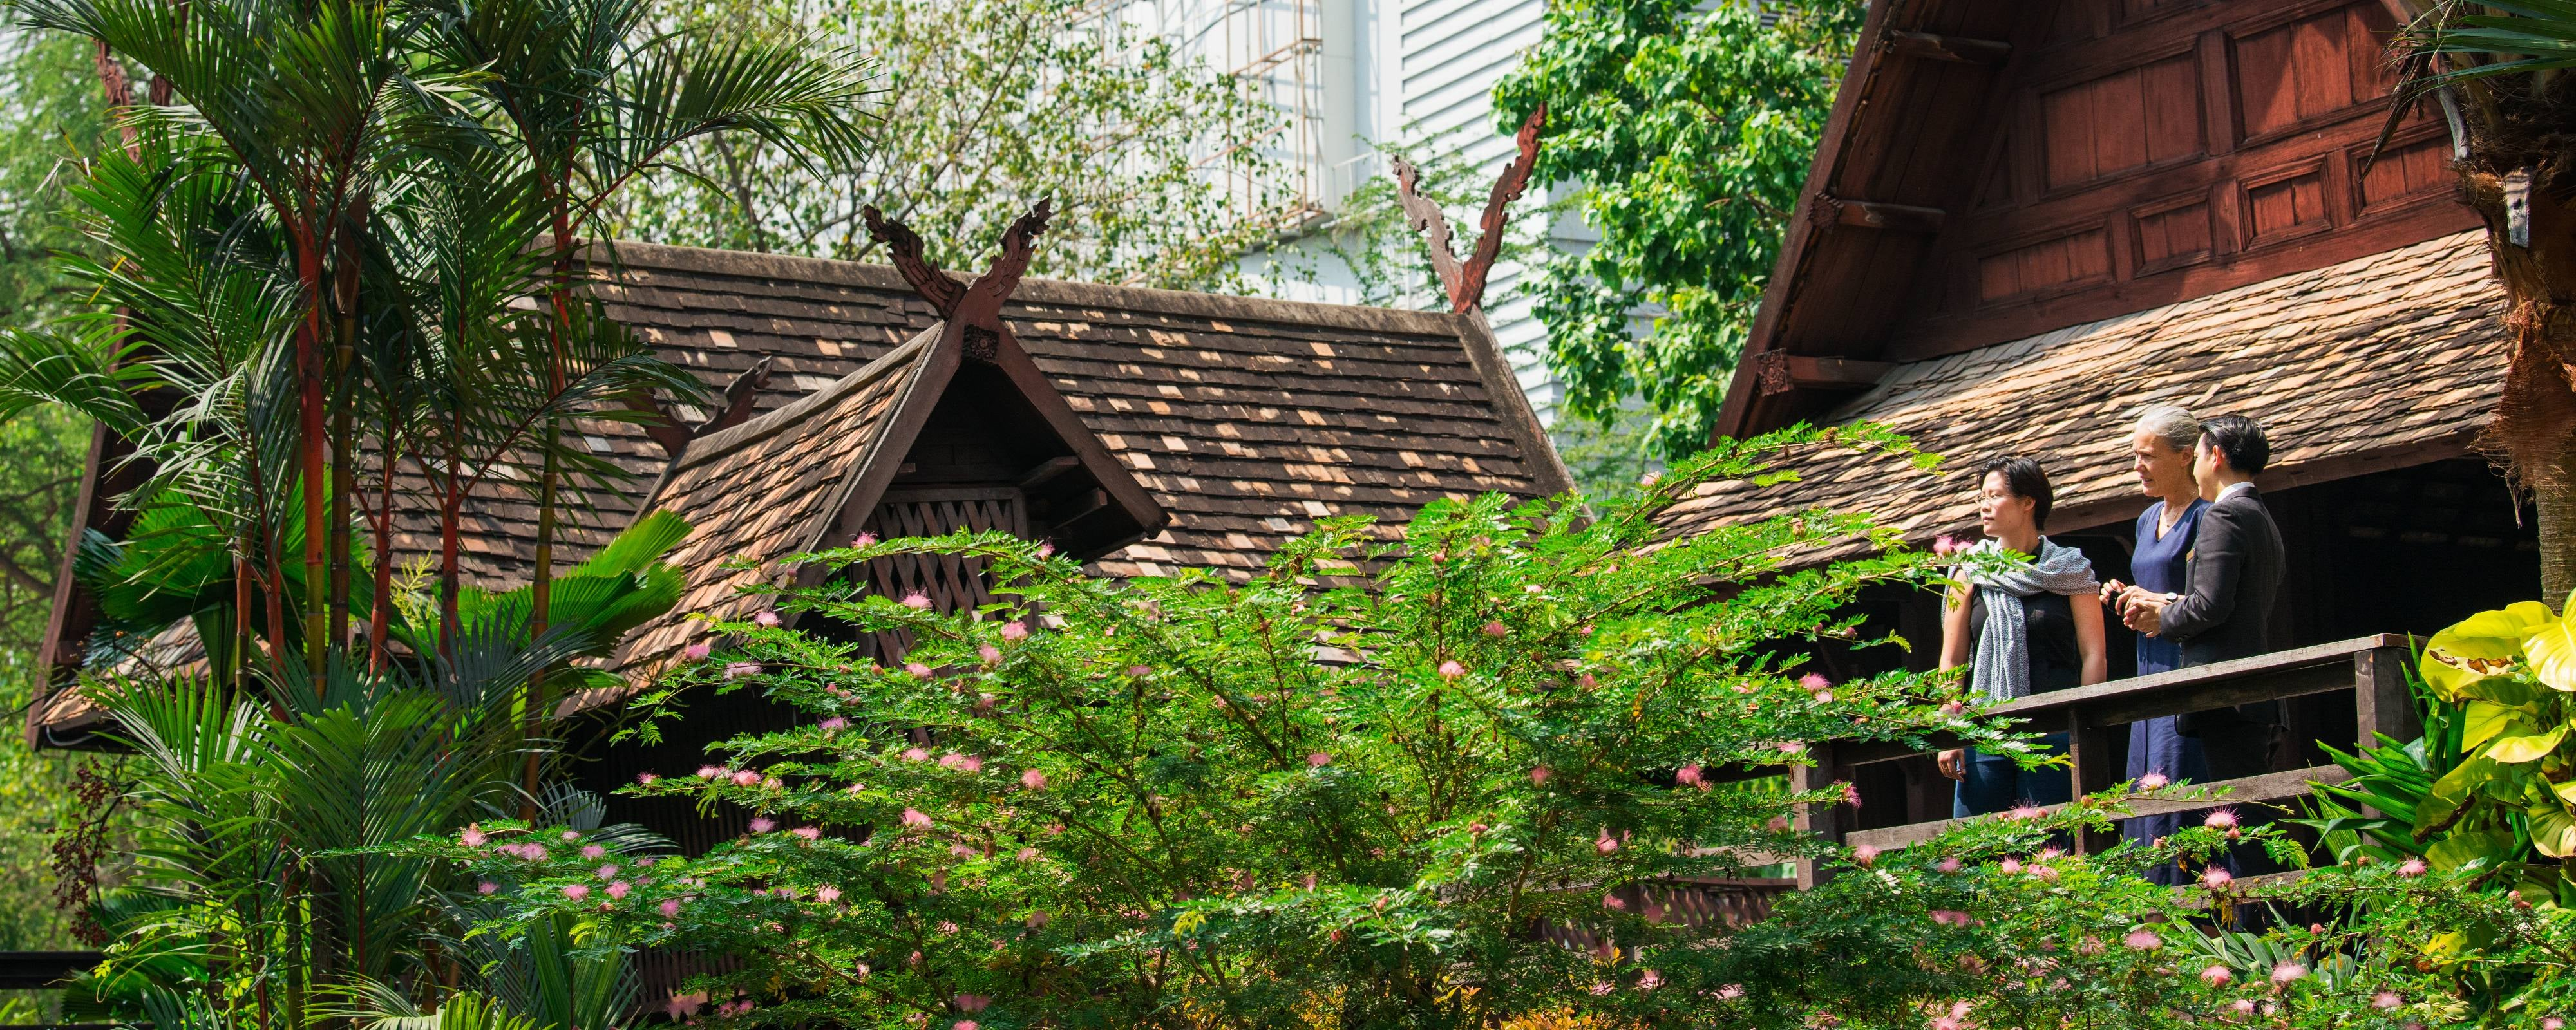 Baan Kamthieng Thai Wooden House